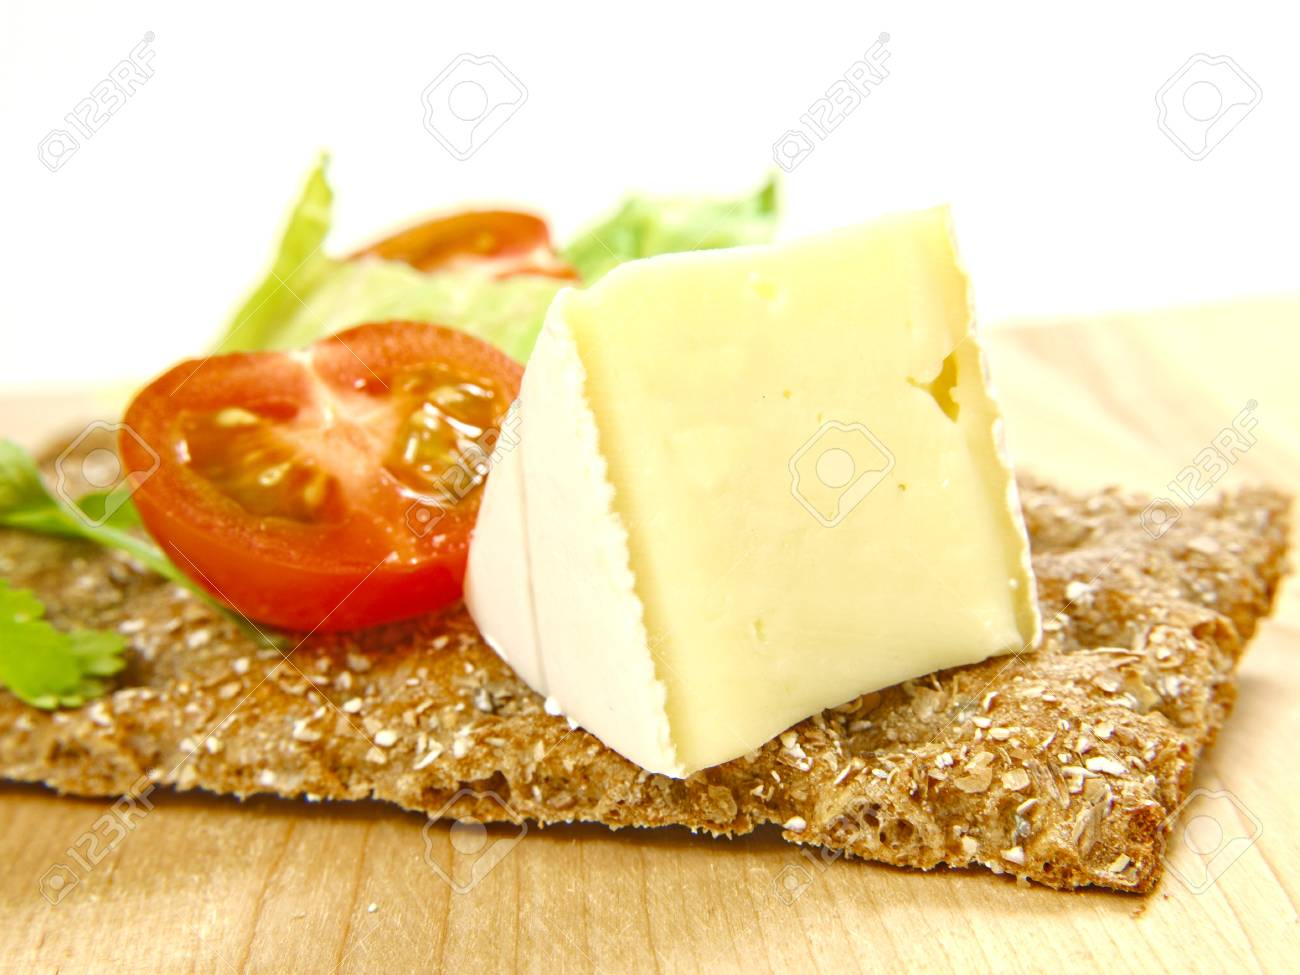 Cracker on wooden board, with soft cheese and tomato Stock Photo - 13107152